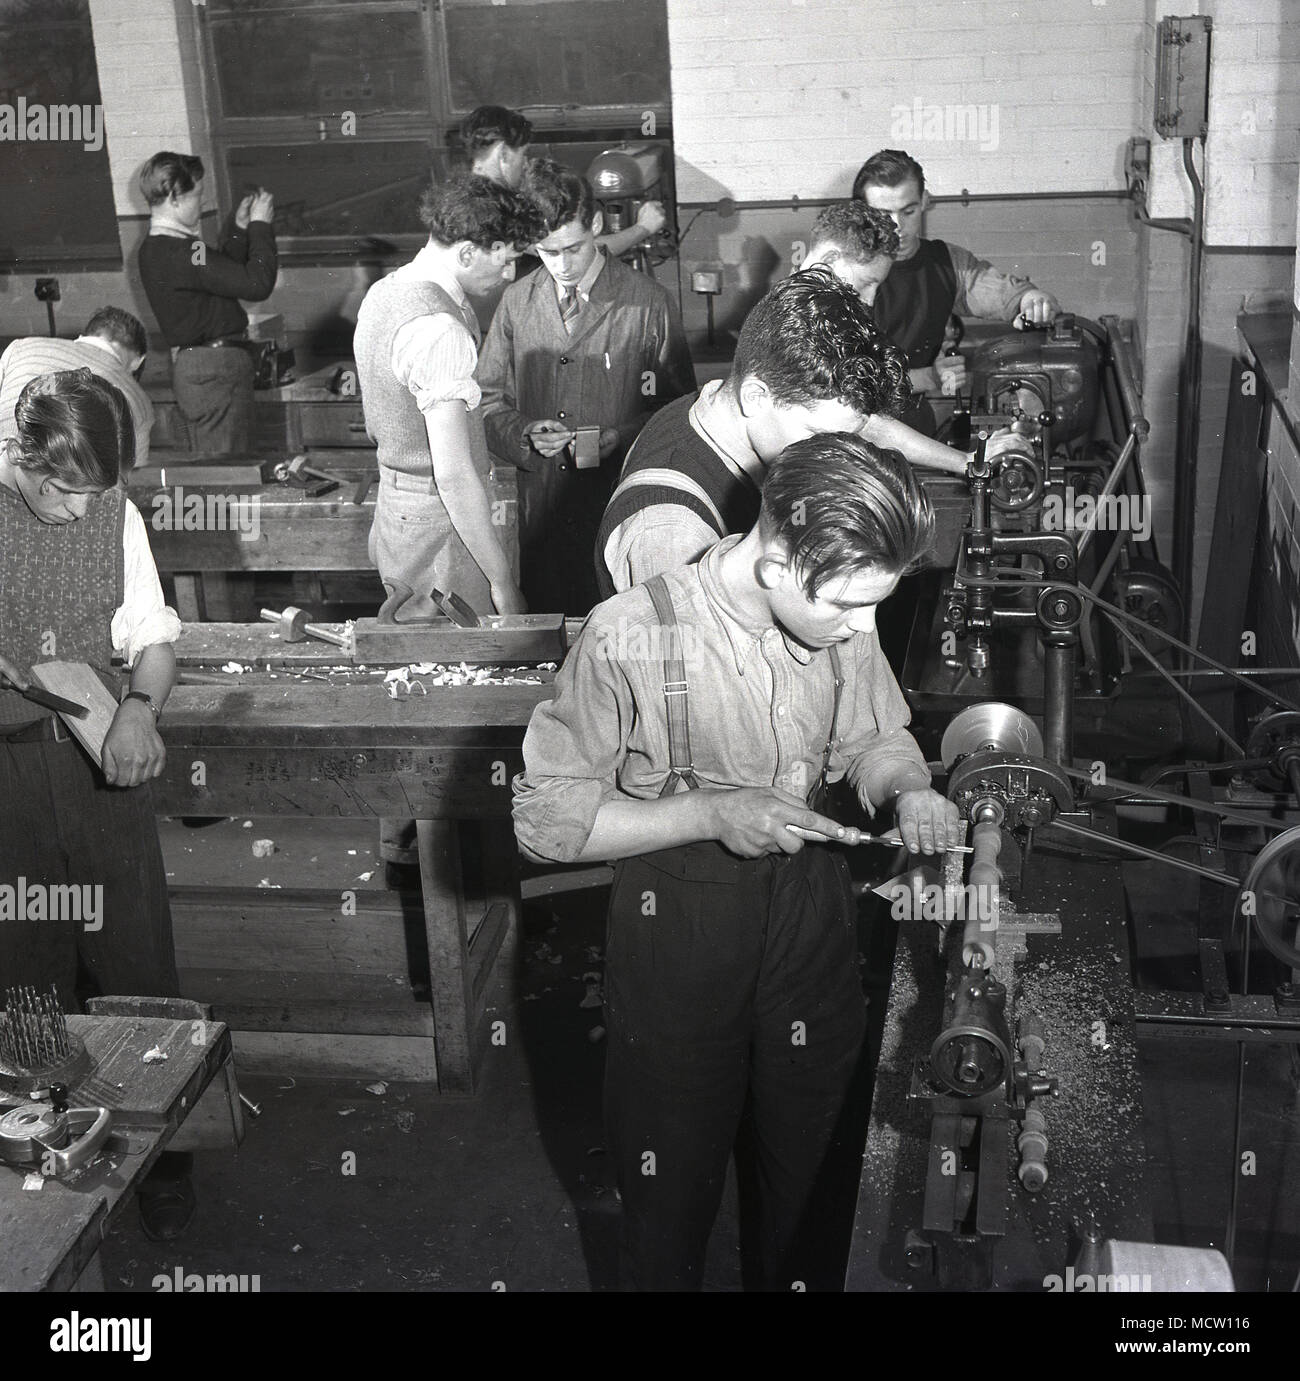 Historical picture, 1950s, of a group of male engineering apprentices using machine tools and getting 'hands on', practical experience in an industrial workshop, England, UK. In post-war Britain there was a major expansion of technical colleges and apprenticeship schemes to encourage more young people into important industrial sectors such as engineering and manufacturing. Stock Photo